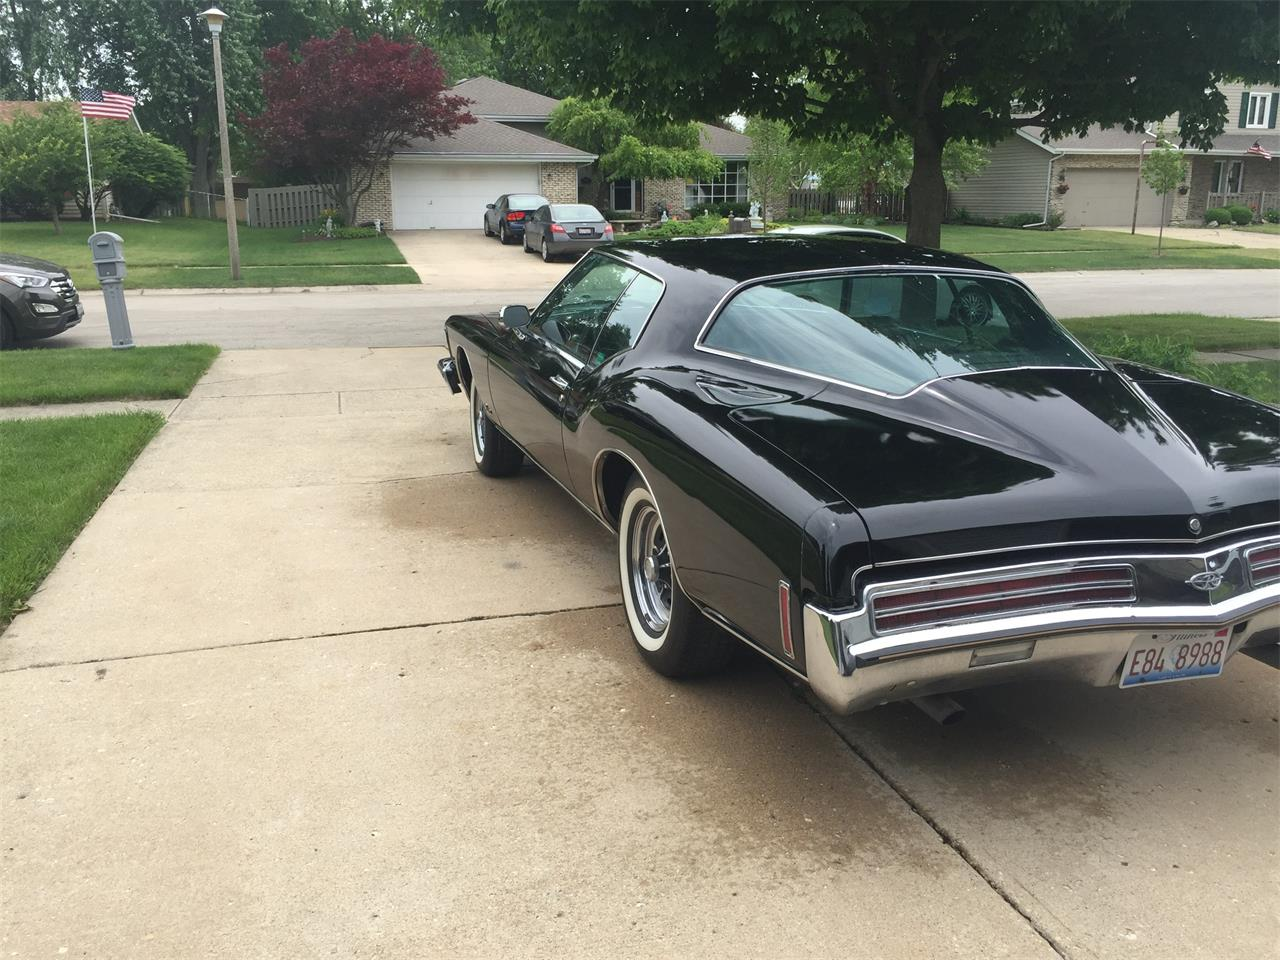 Large Picture of 1973 Buick Riviera located in Illinois Offered by a Private Seller - Q394